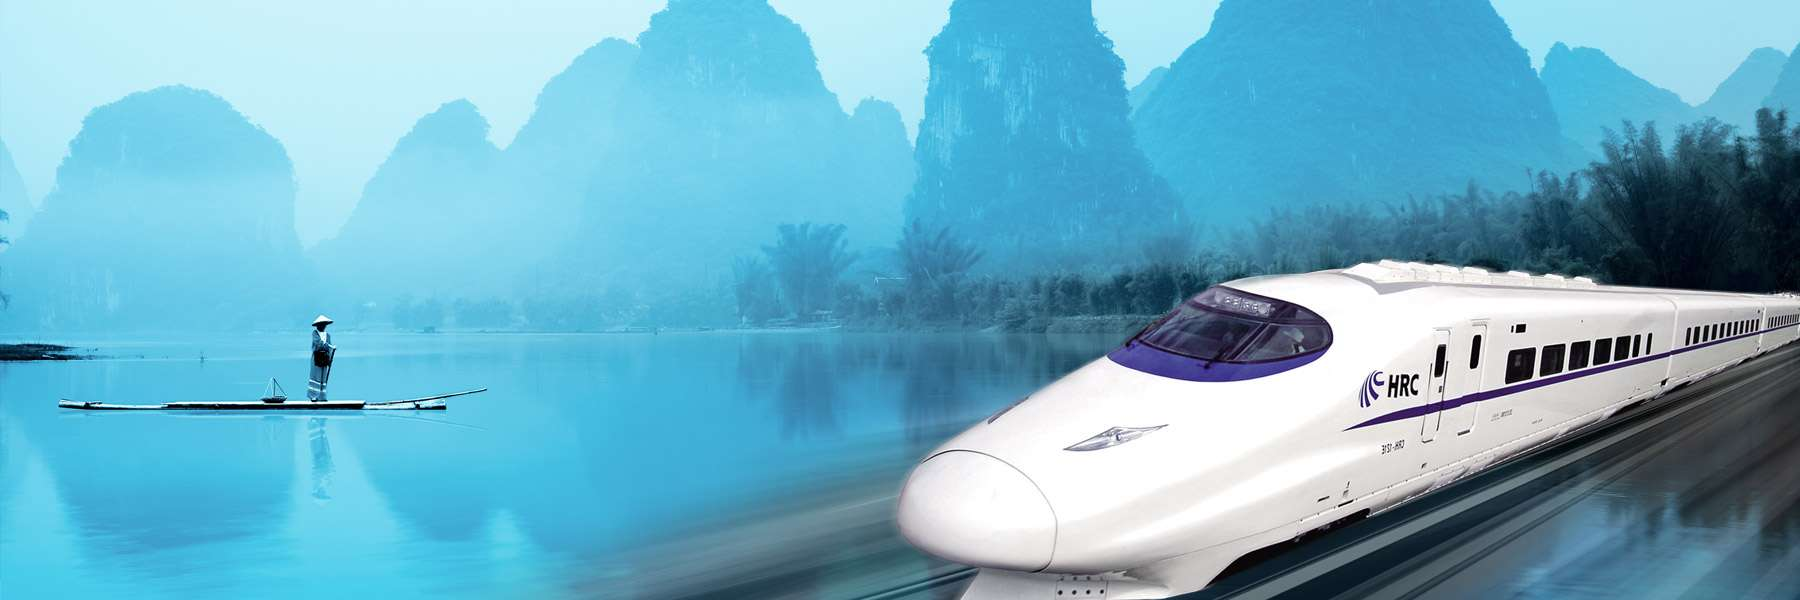 Guilin Bullet Train